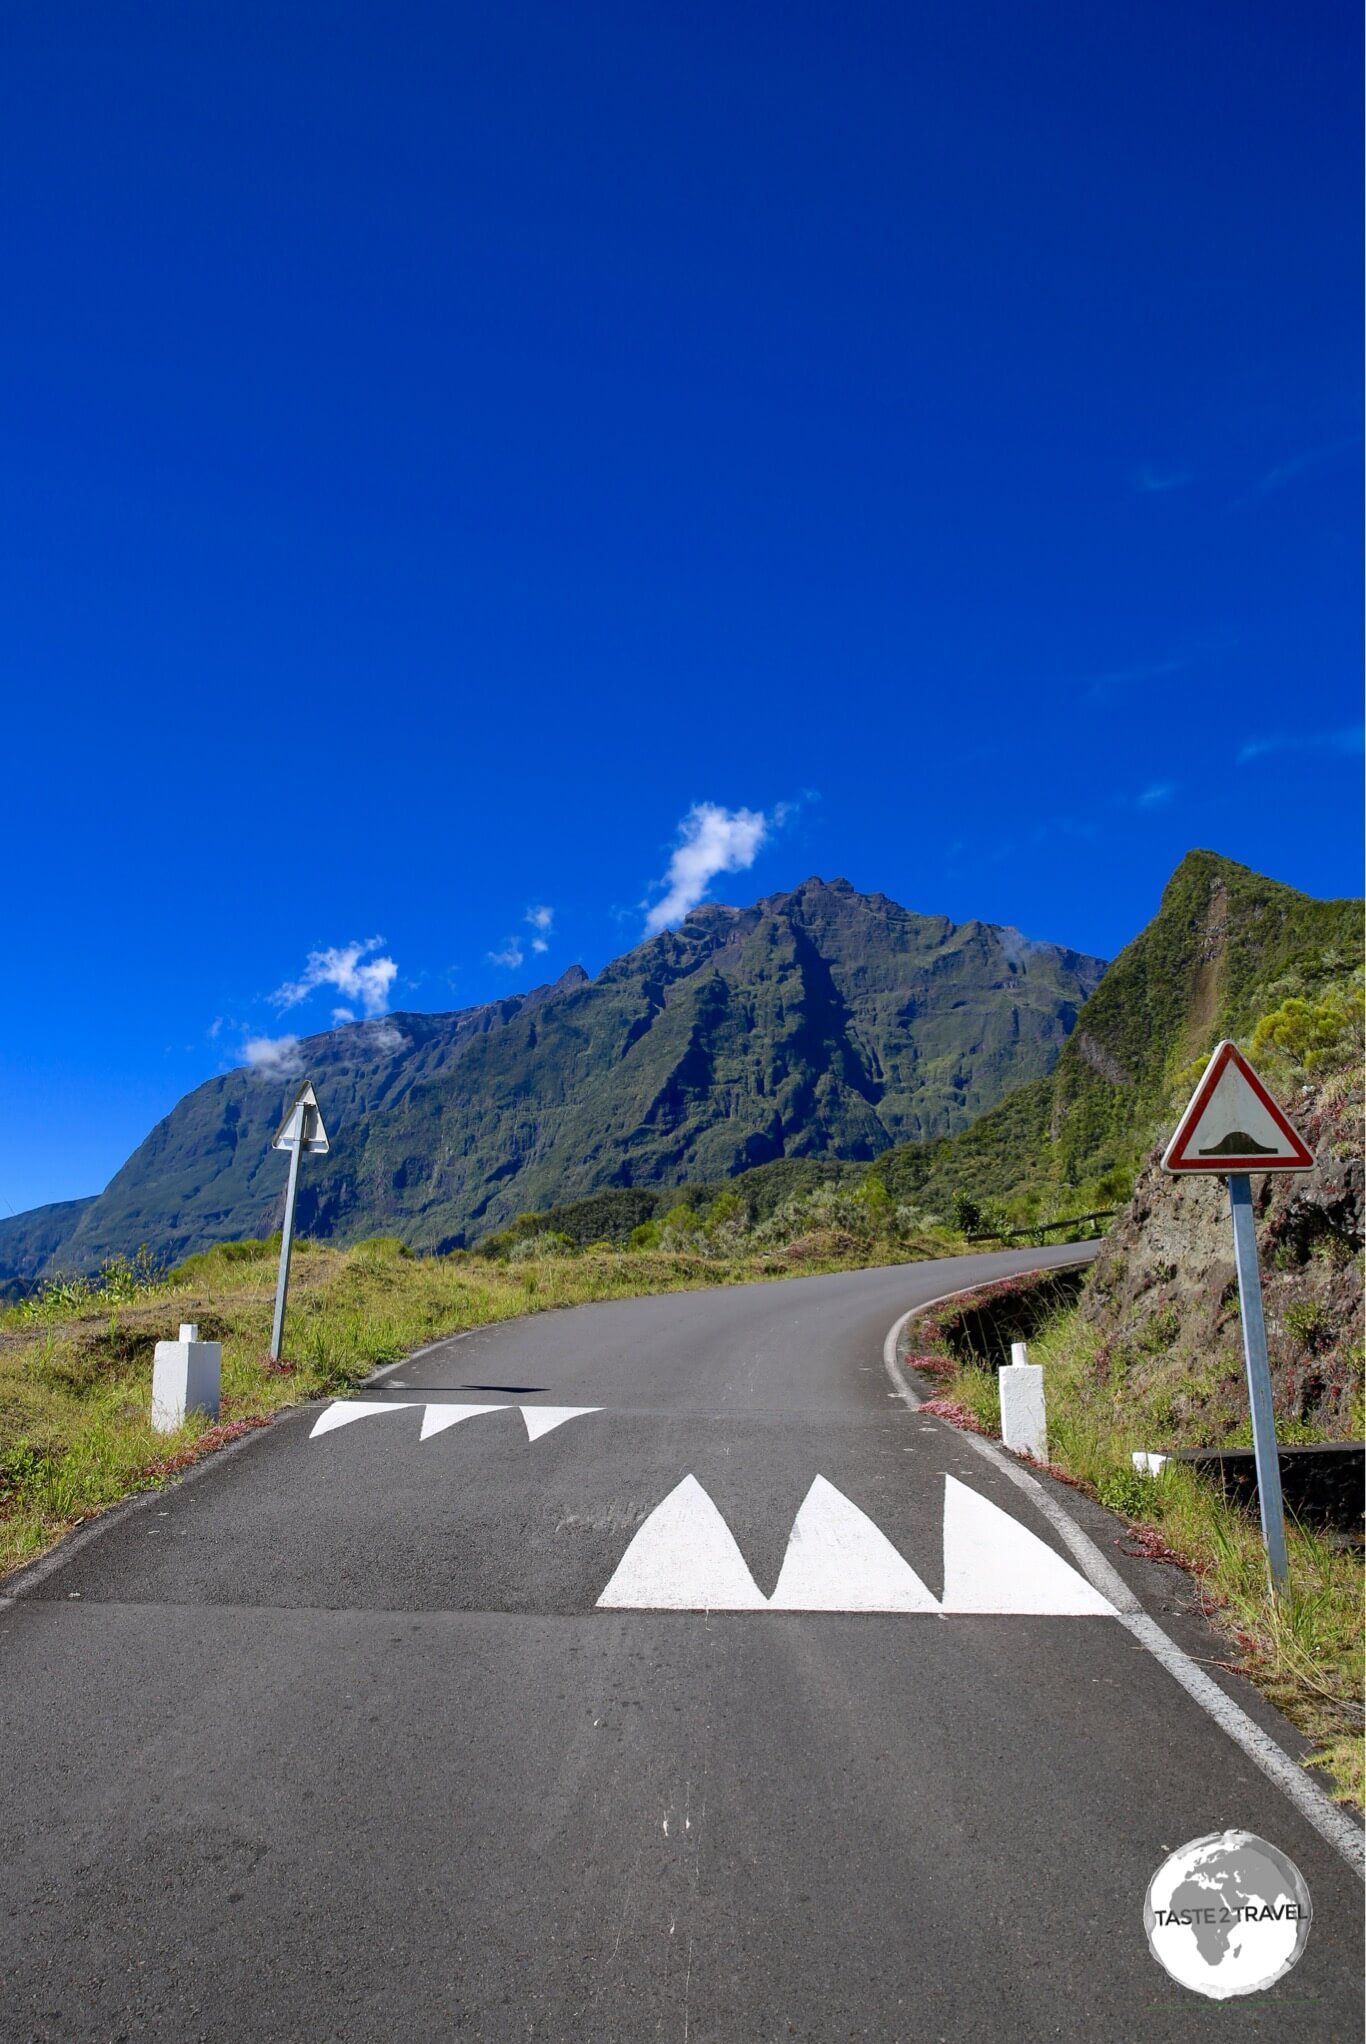 While there are no roads inside the Cirque de Mafate, a back road from the Cirque de Salazie does allow partial entry by car.